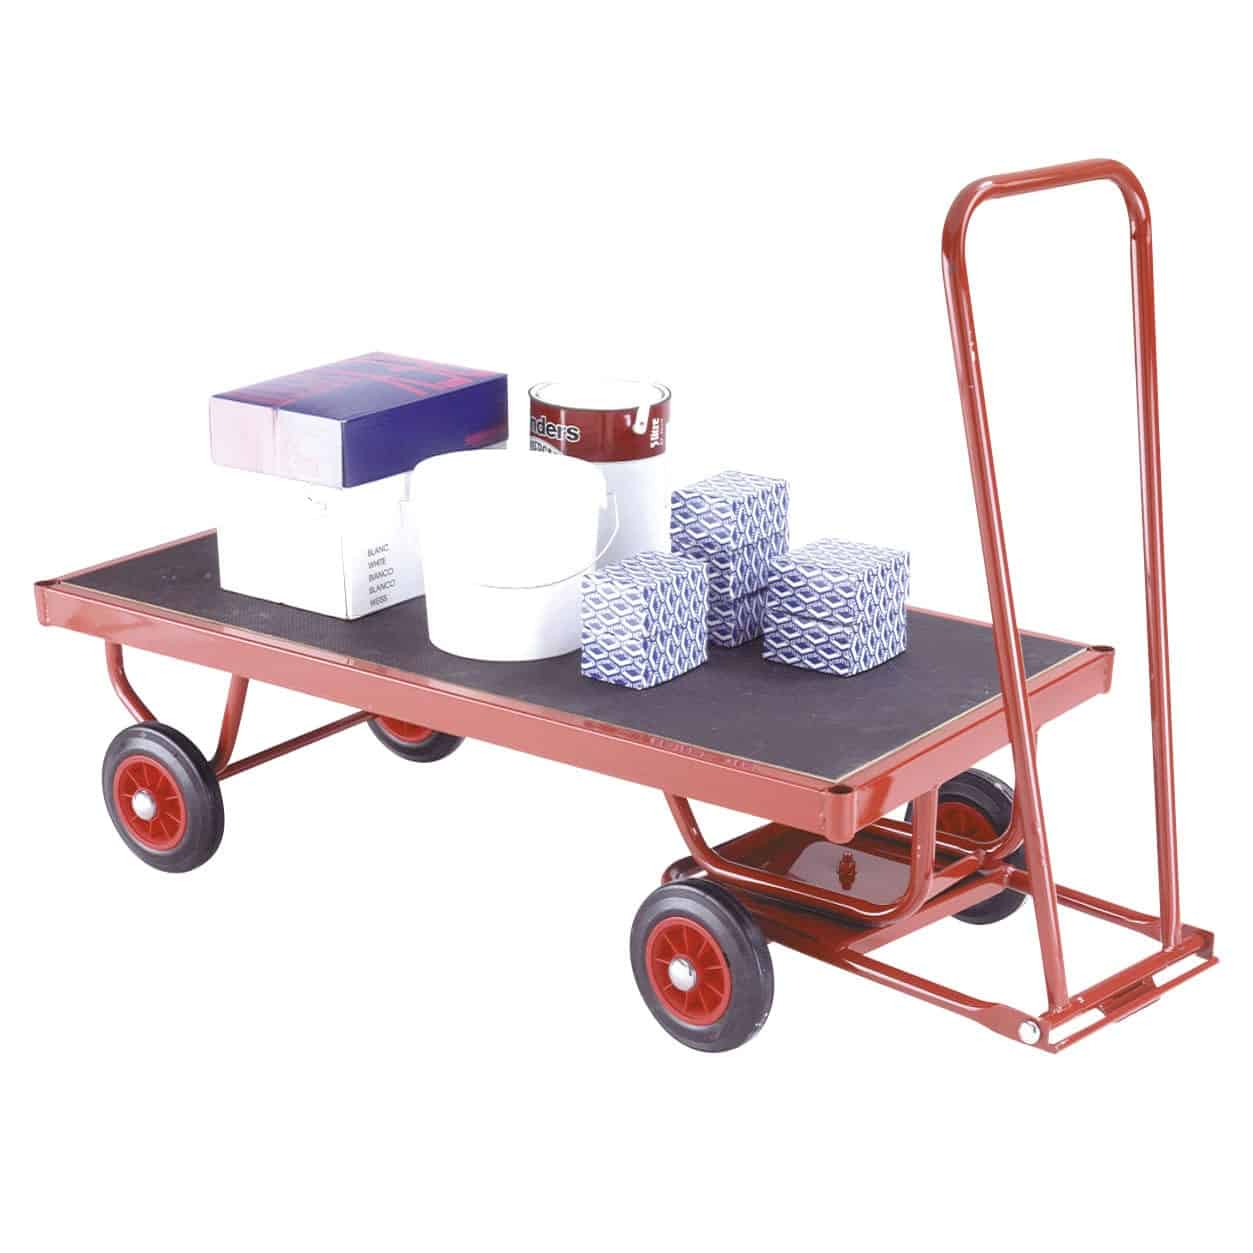 Phenolic Flatbed Turntable Trailers